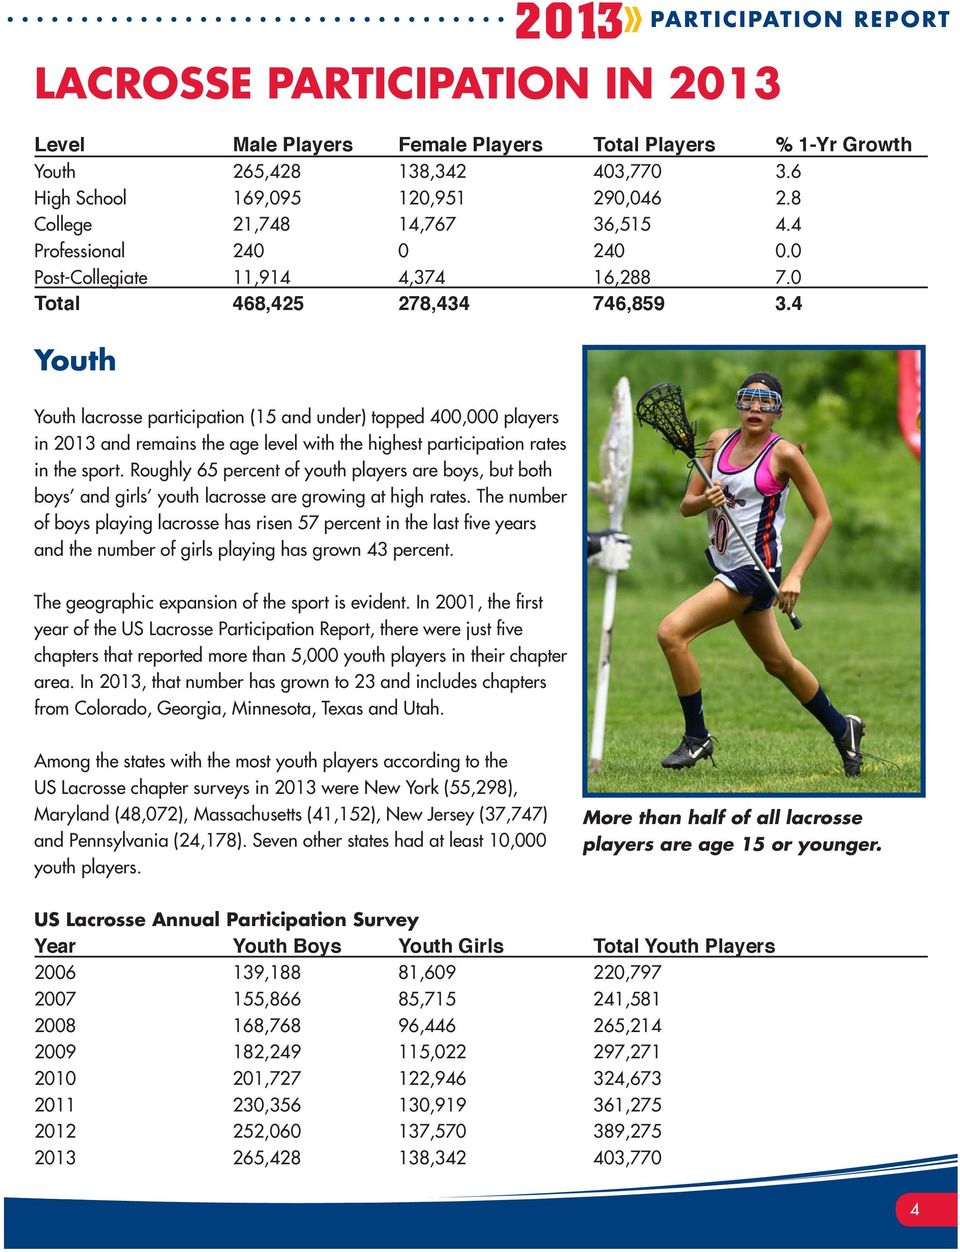 4 Youth Youth lacrosse participation (15 and under) topped 400,000 players in 2013 and remains the age level with the highest participation rates in the sport.